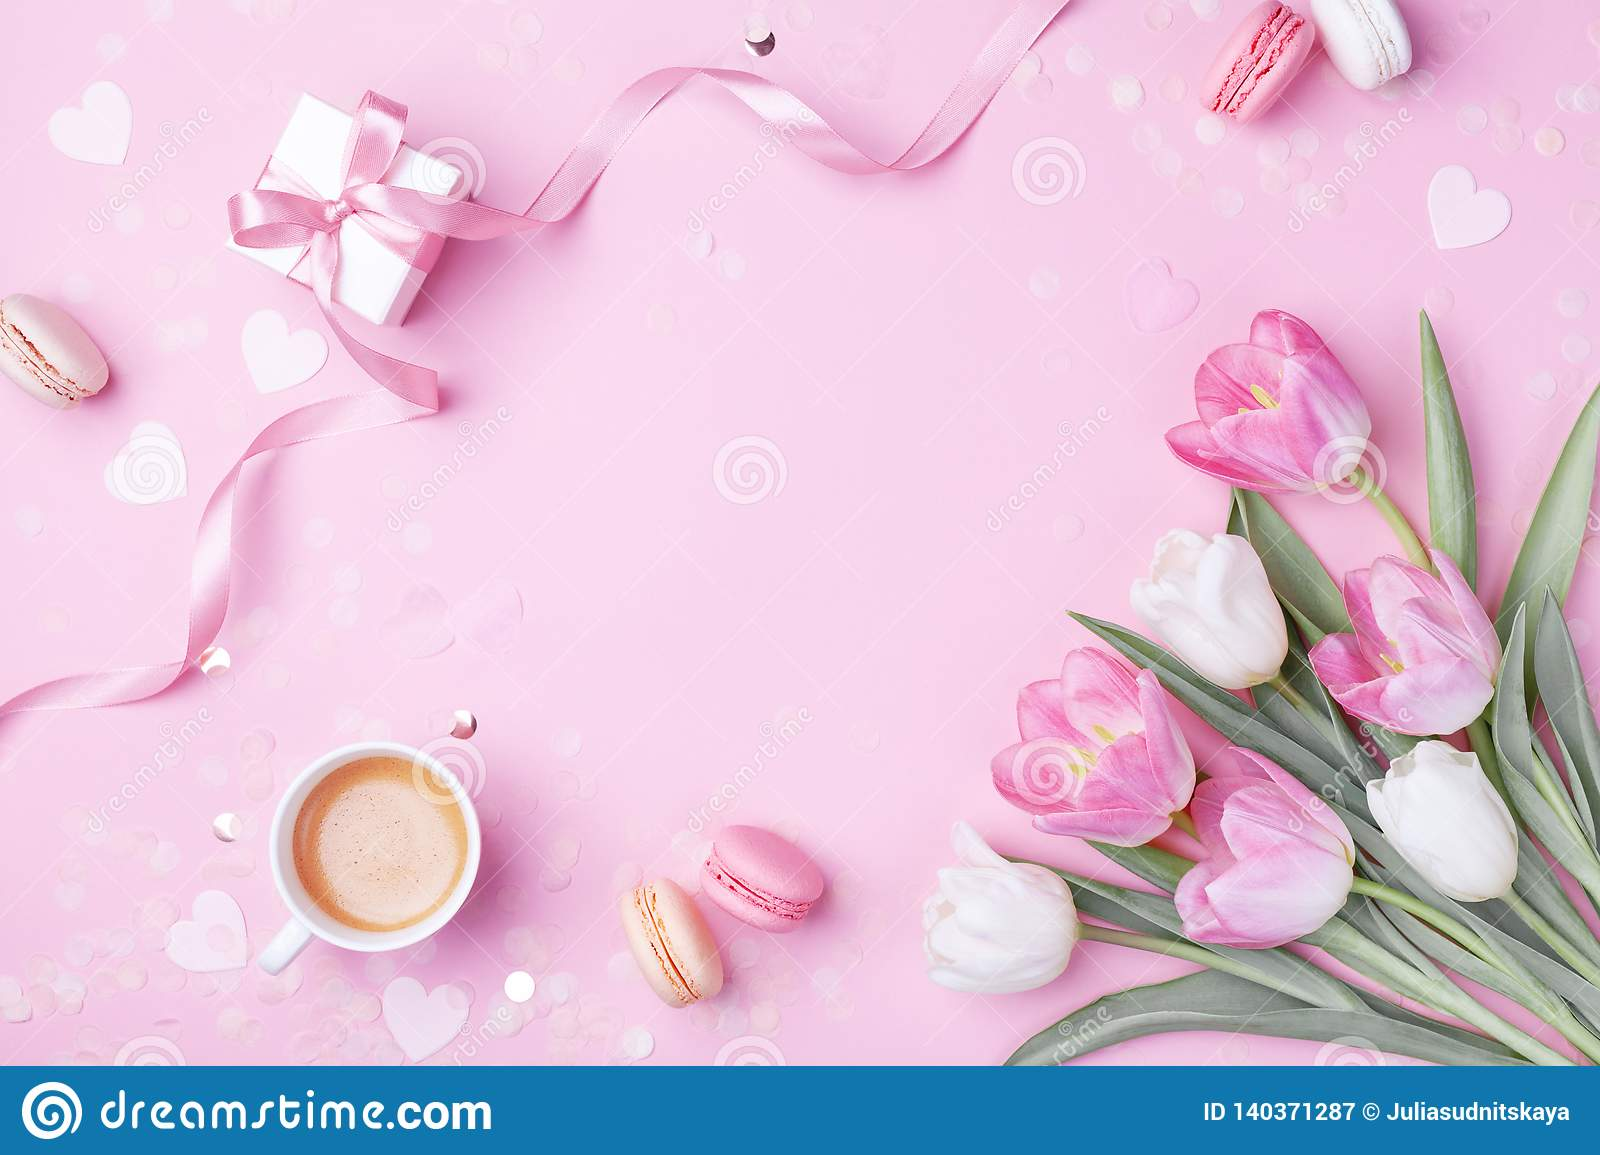 Morning cup of coffee, cake macaron, gift or present box and spring tulip flowers on pink. Breakfast for Women, Mother day